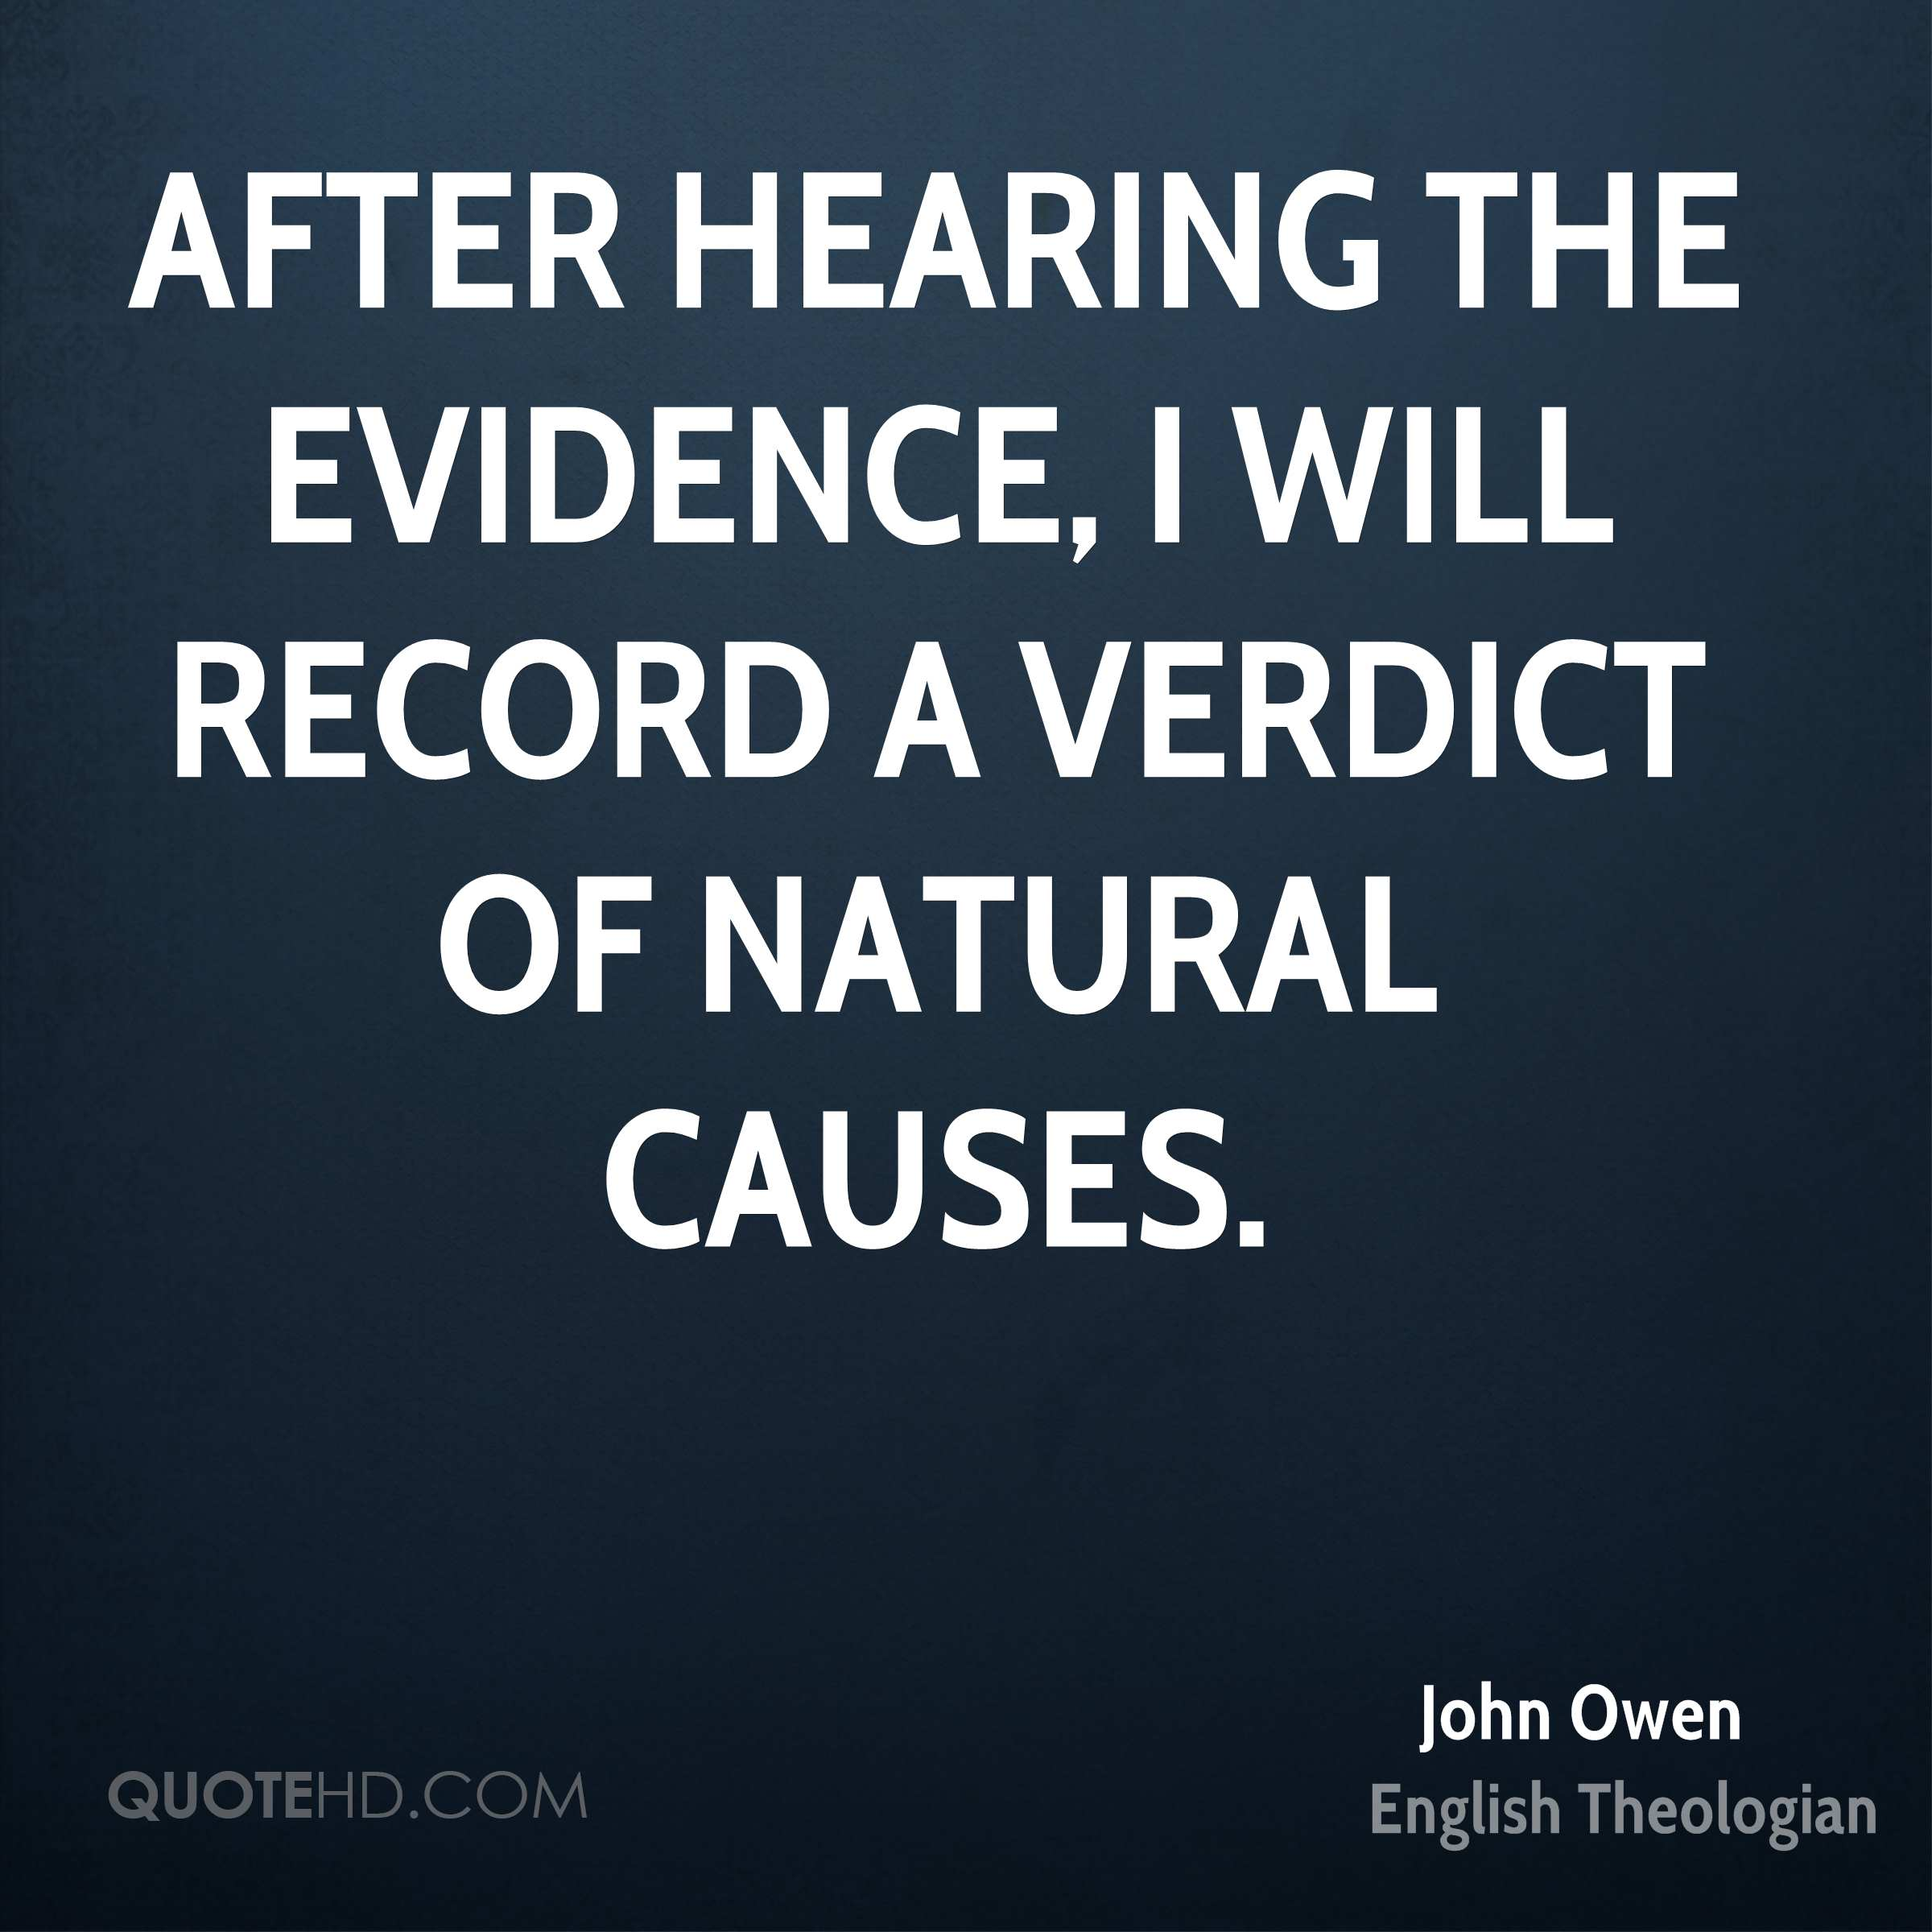 After hearing the evidence, I will record a verdict of natural causes.